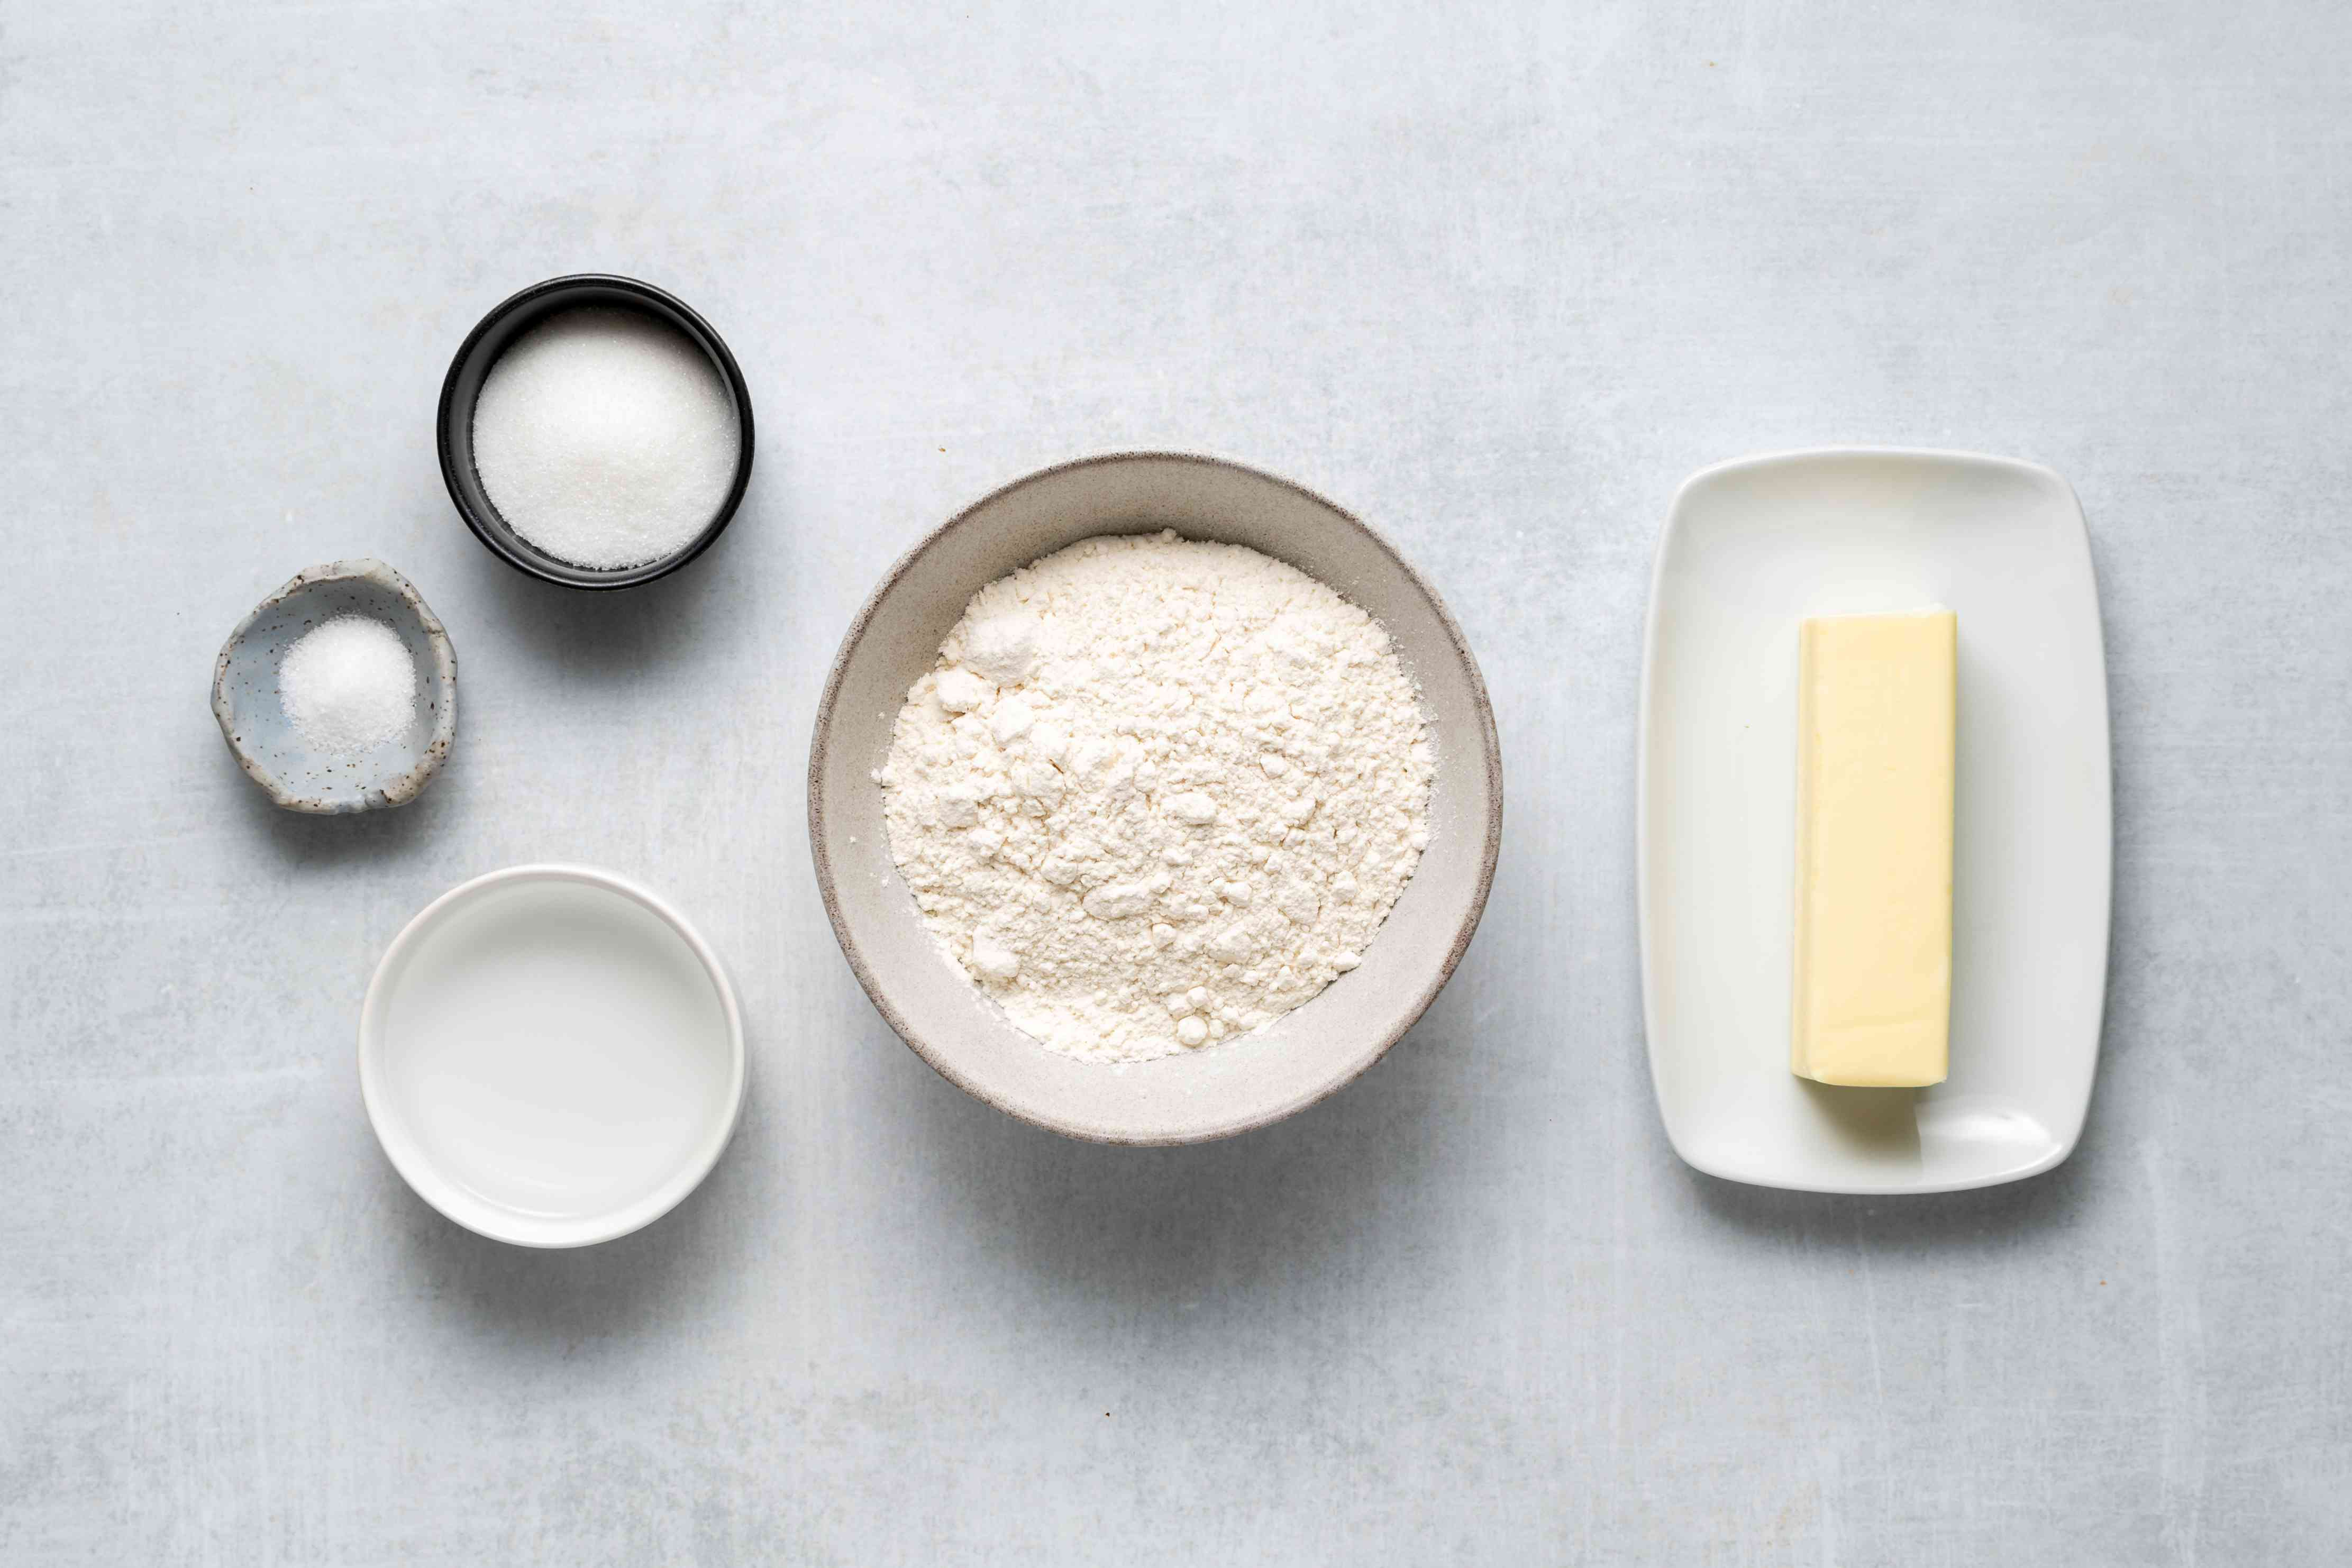 Classic French Tarte Aux Pommes dough ingredients